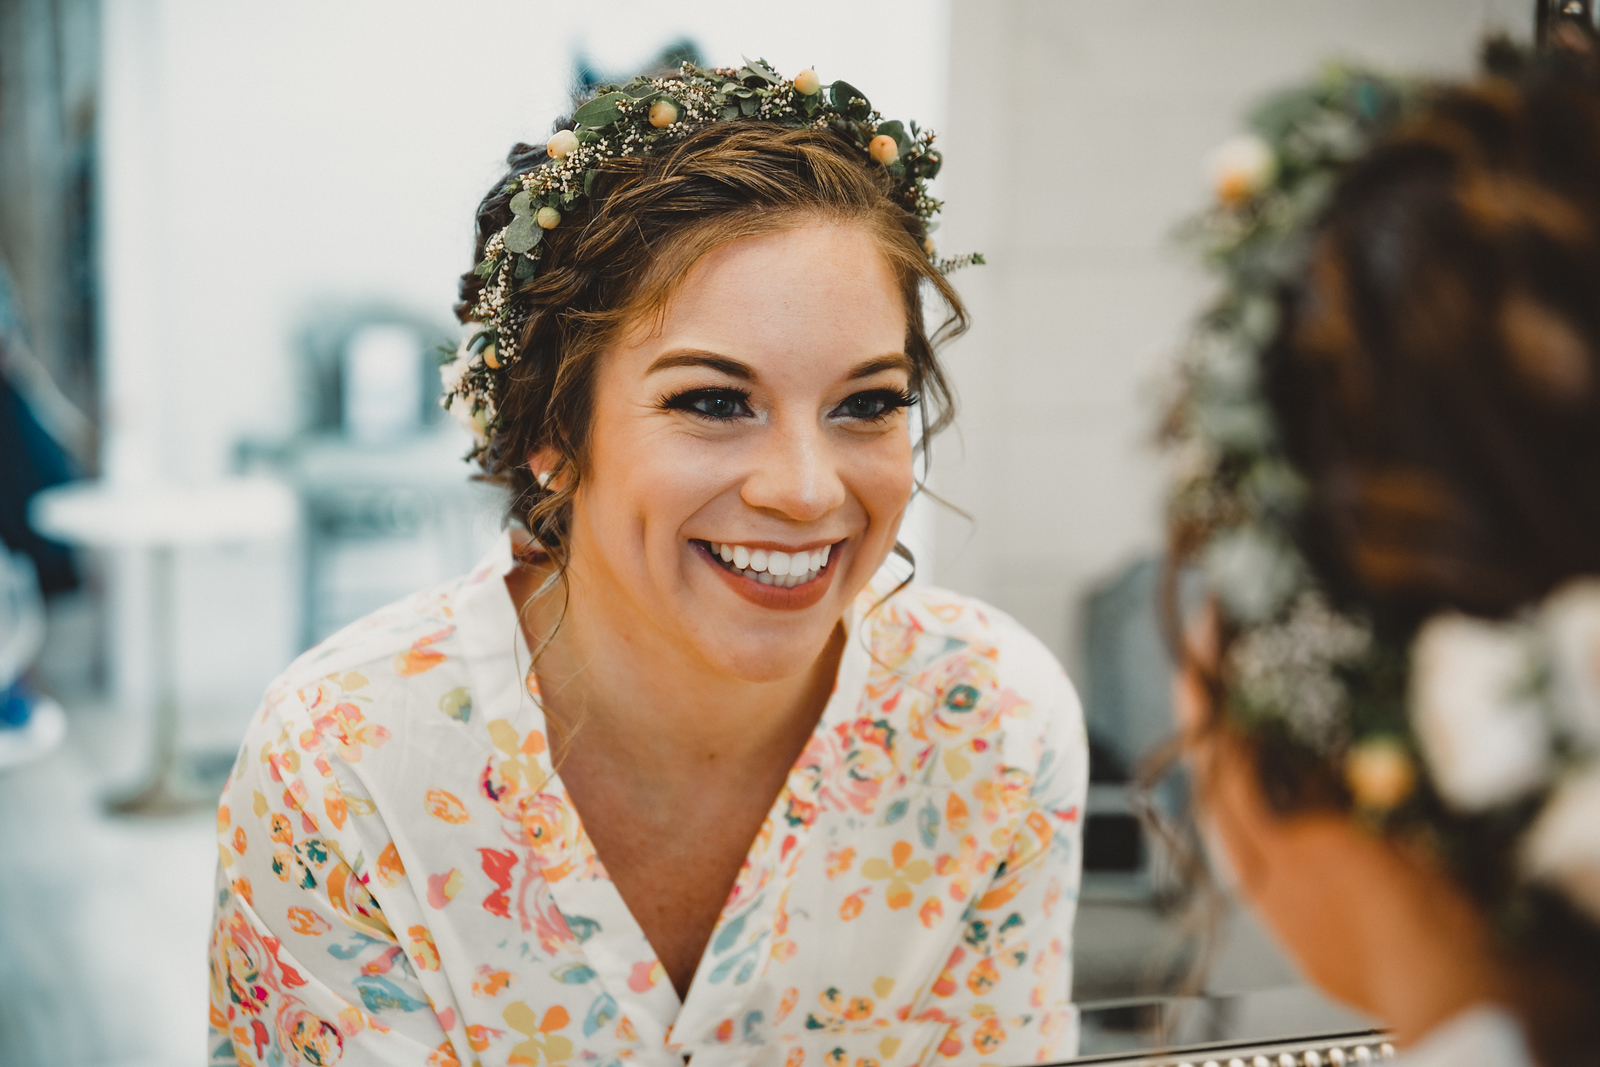 a bride smiling in the mirror while getting ready for her wedding day